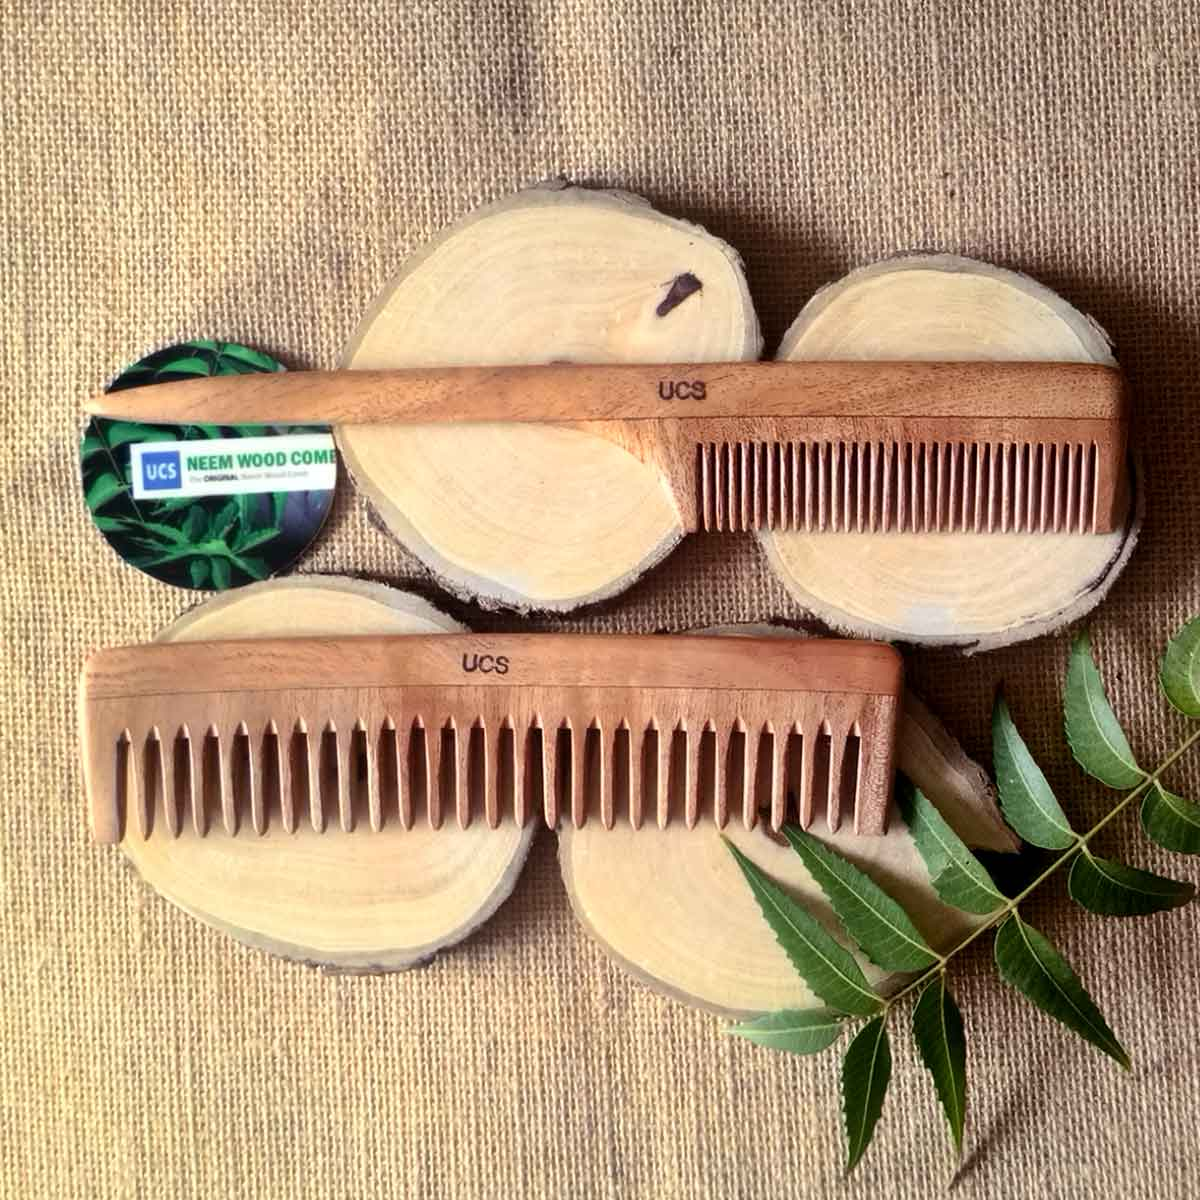 Set of 2 Neem Wood Hair Combs For Thick, Curly Hair (UCS1060)